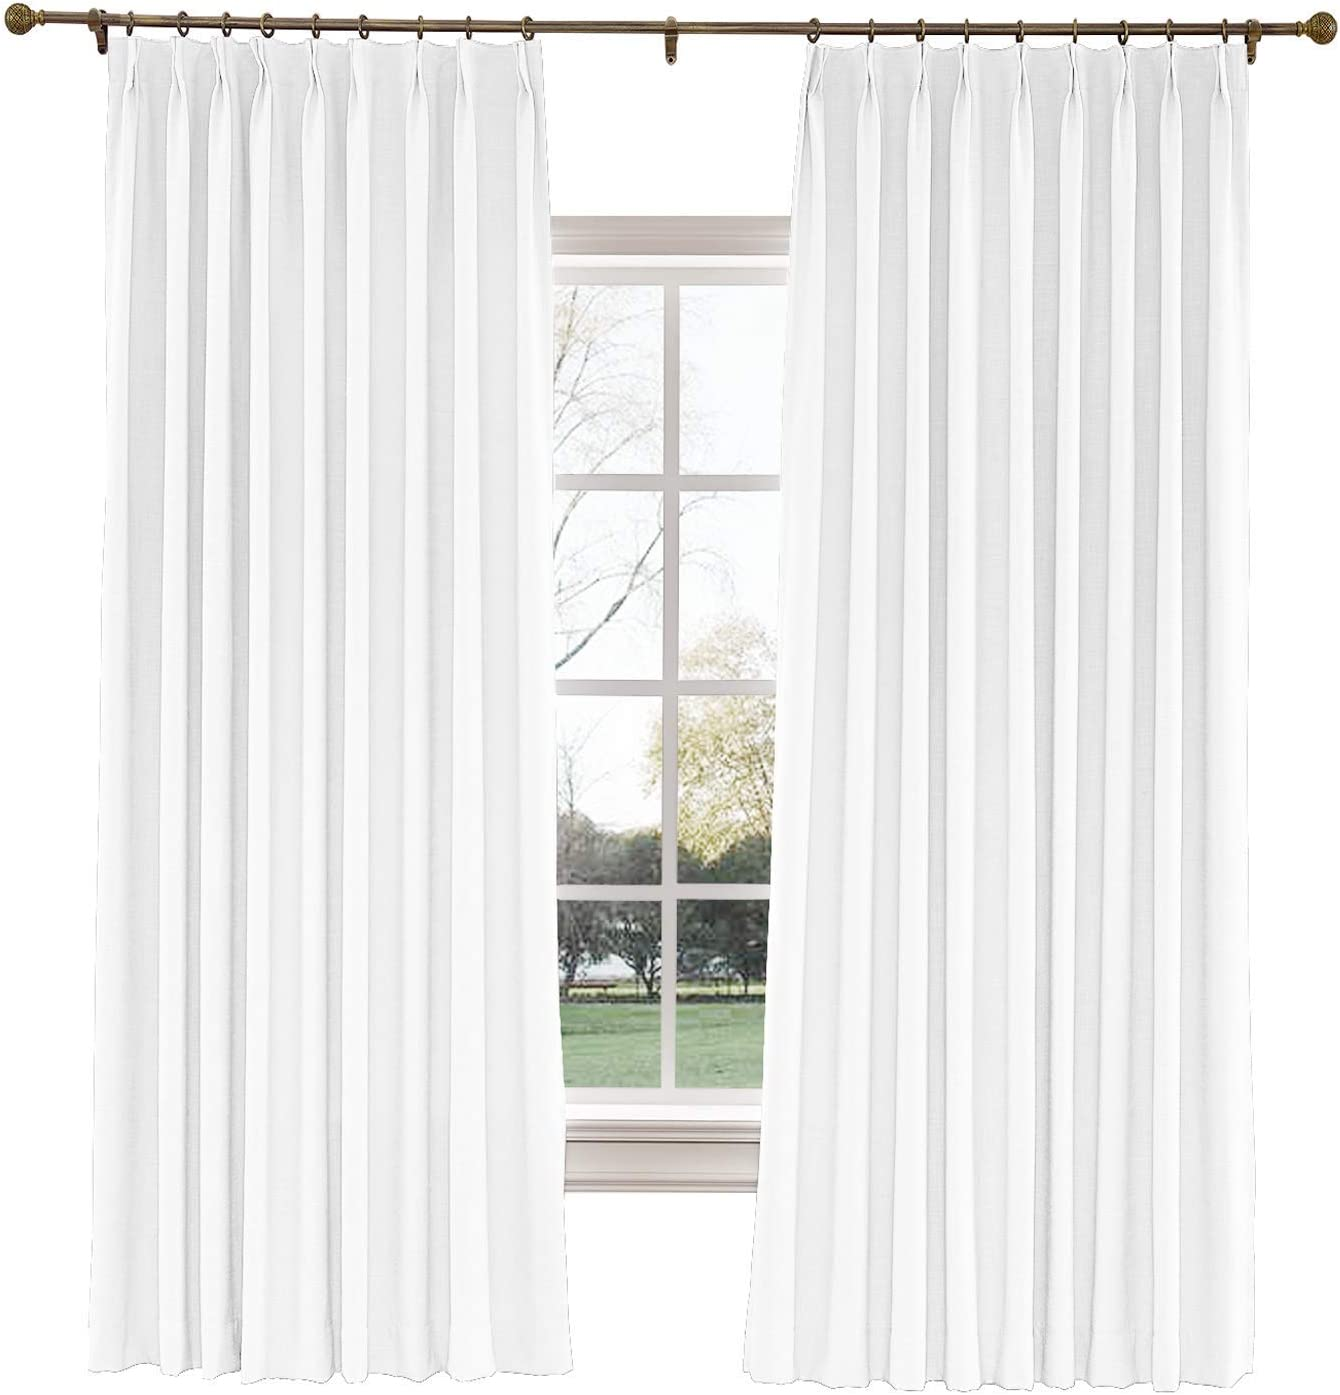 Living Room Curtains Lined Drapery Panels Black Window Curtains Grommet Curtains Window Panels Pleated Bedroom Curtains Grommet Panels